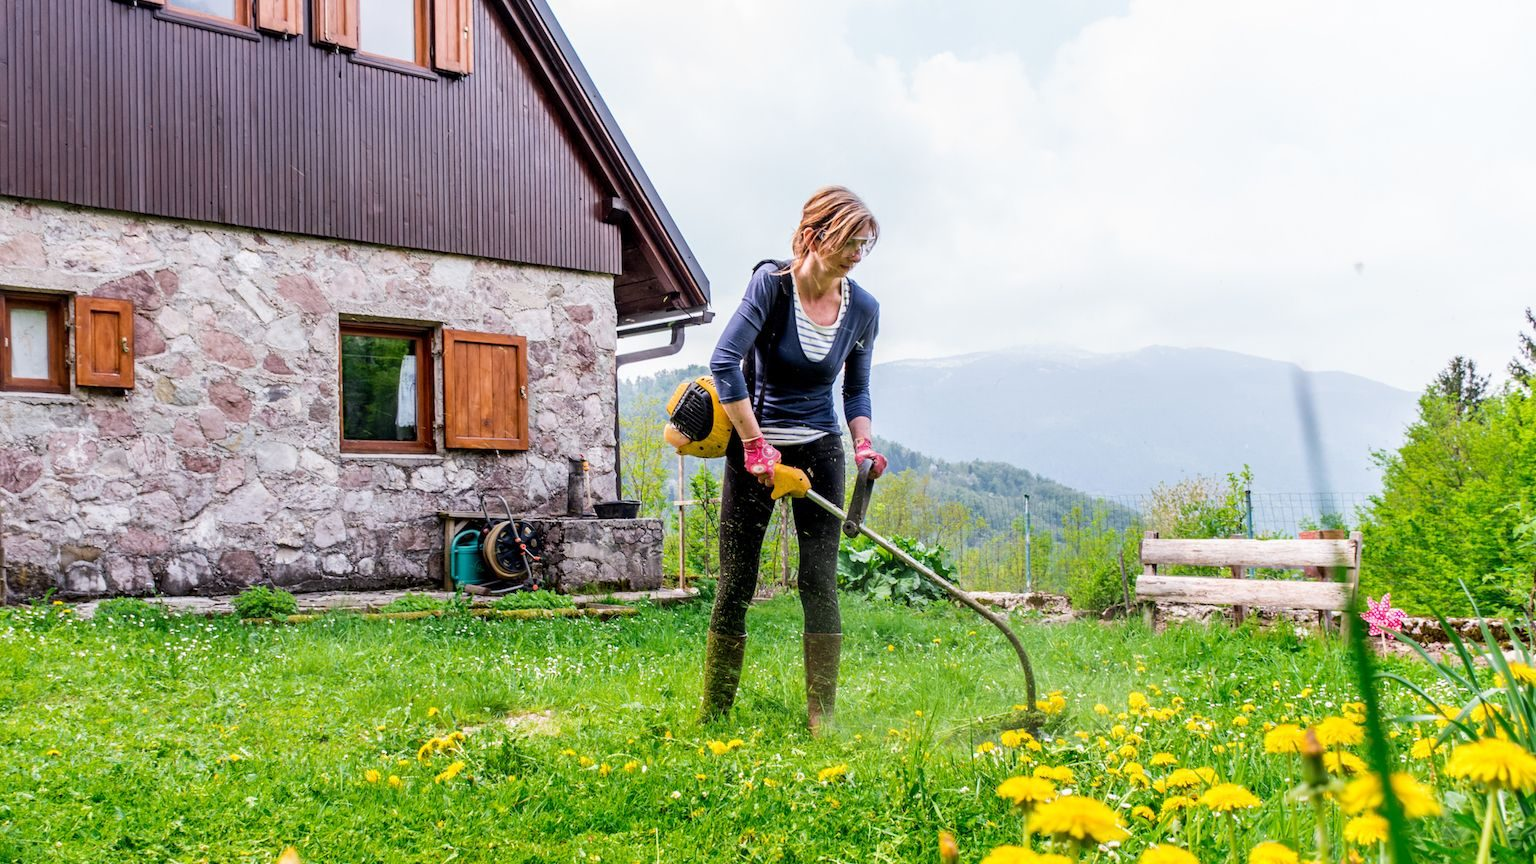 Woman using a whipper snipper to trim the grass outside her house